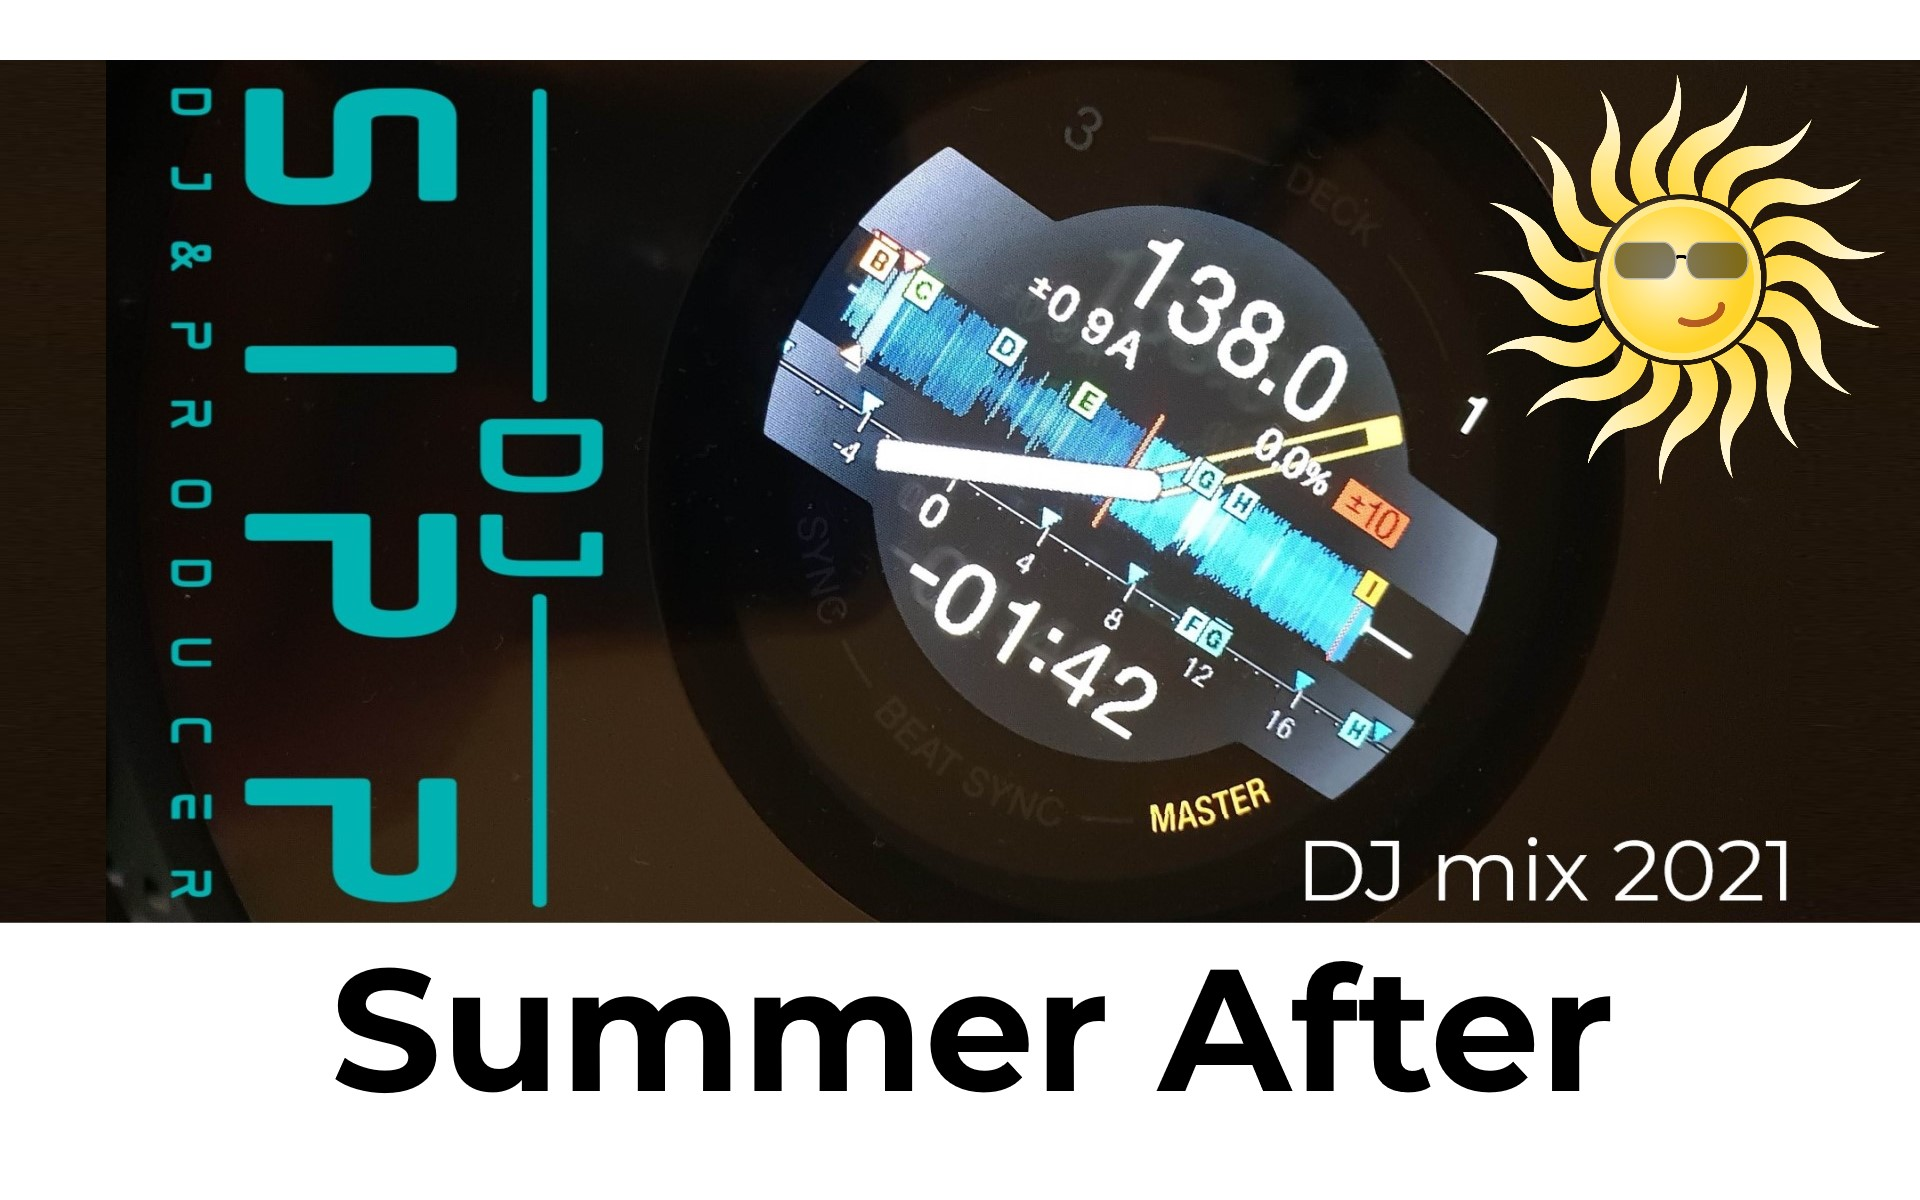 summer_after-mix_cover_2021